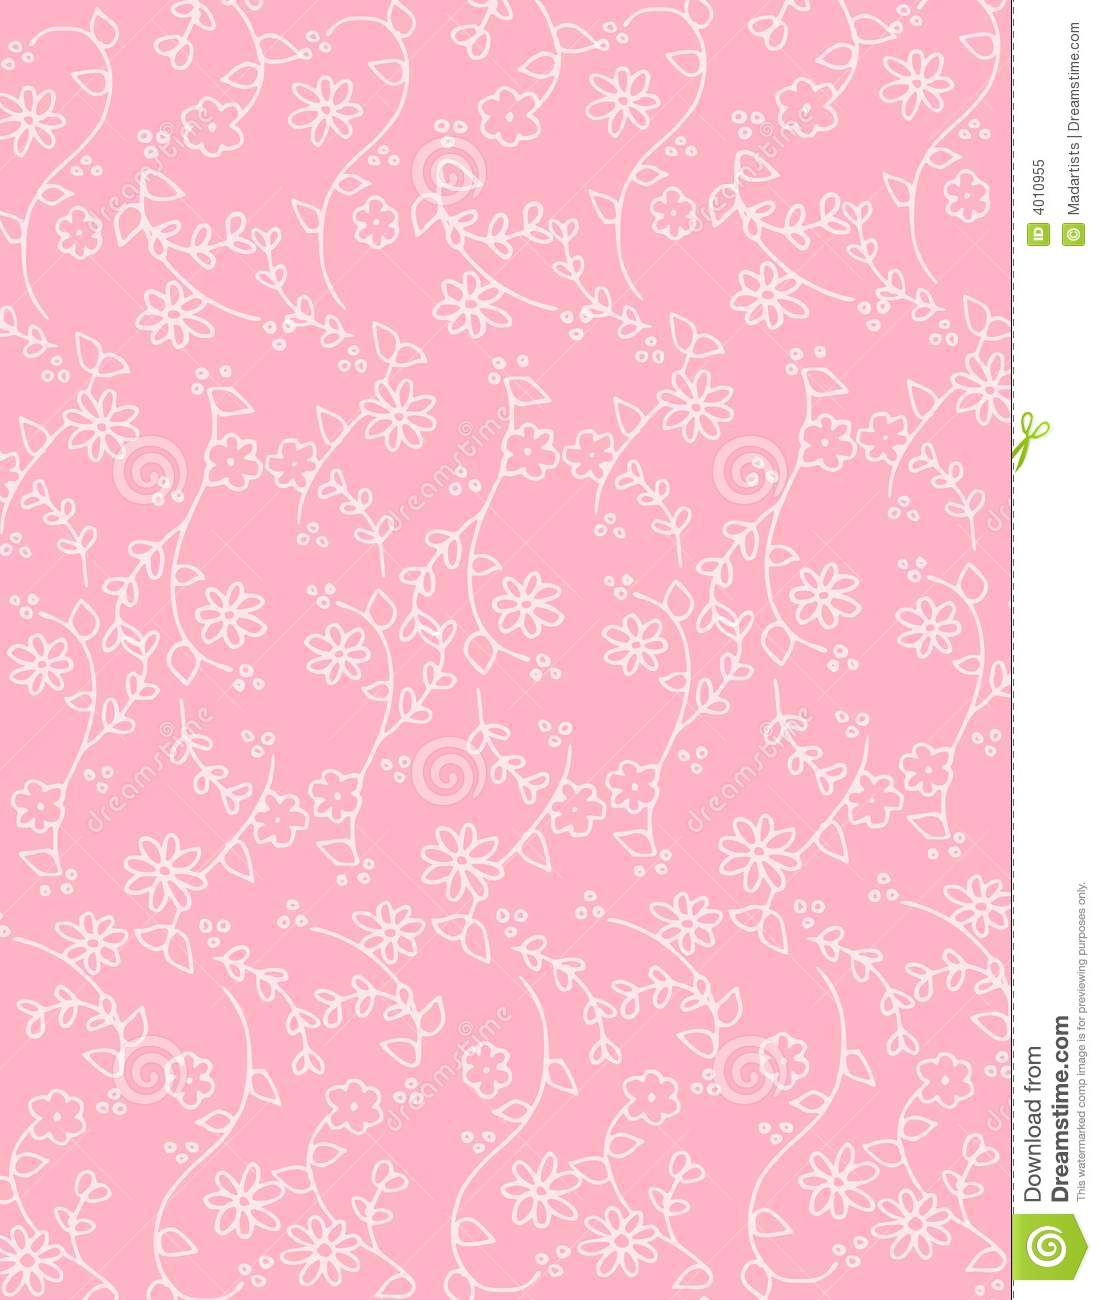 Pink spring flowers background pattern stock illustration pink spring flowers background pattern mightylinksfo Choice Image